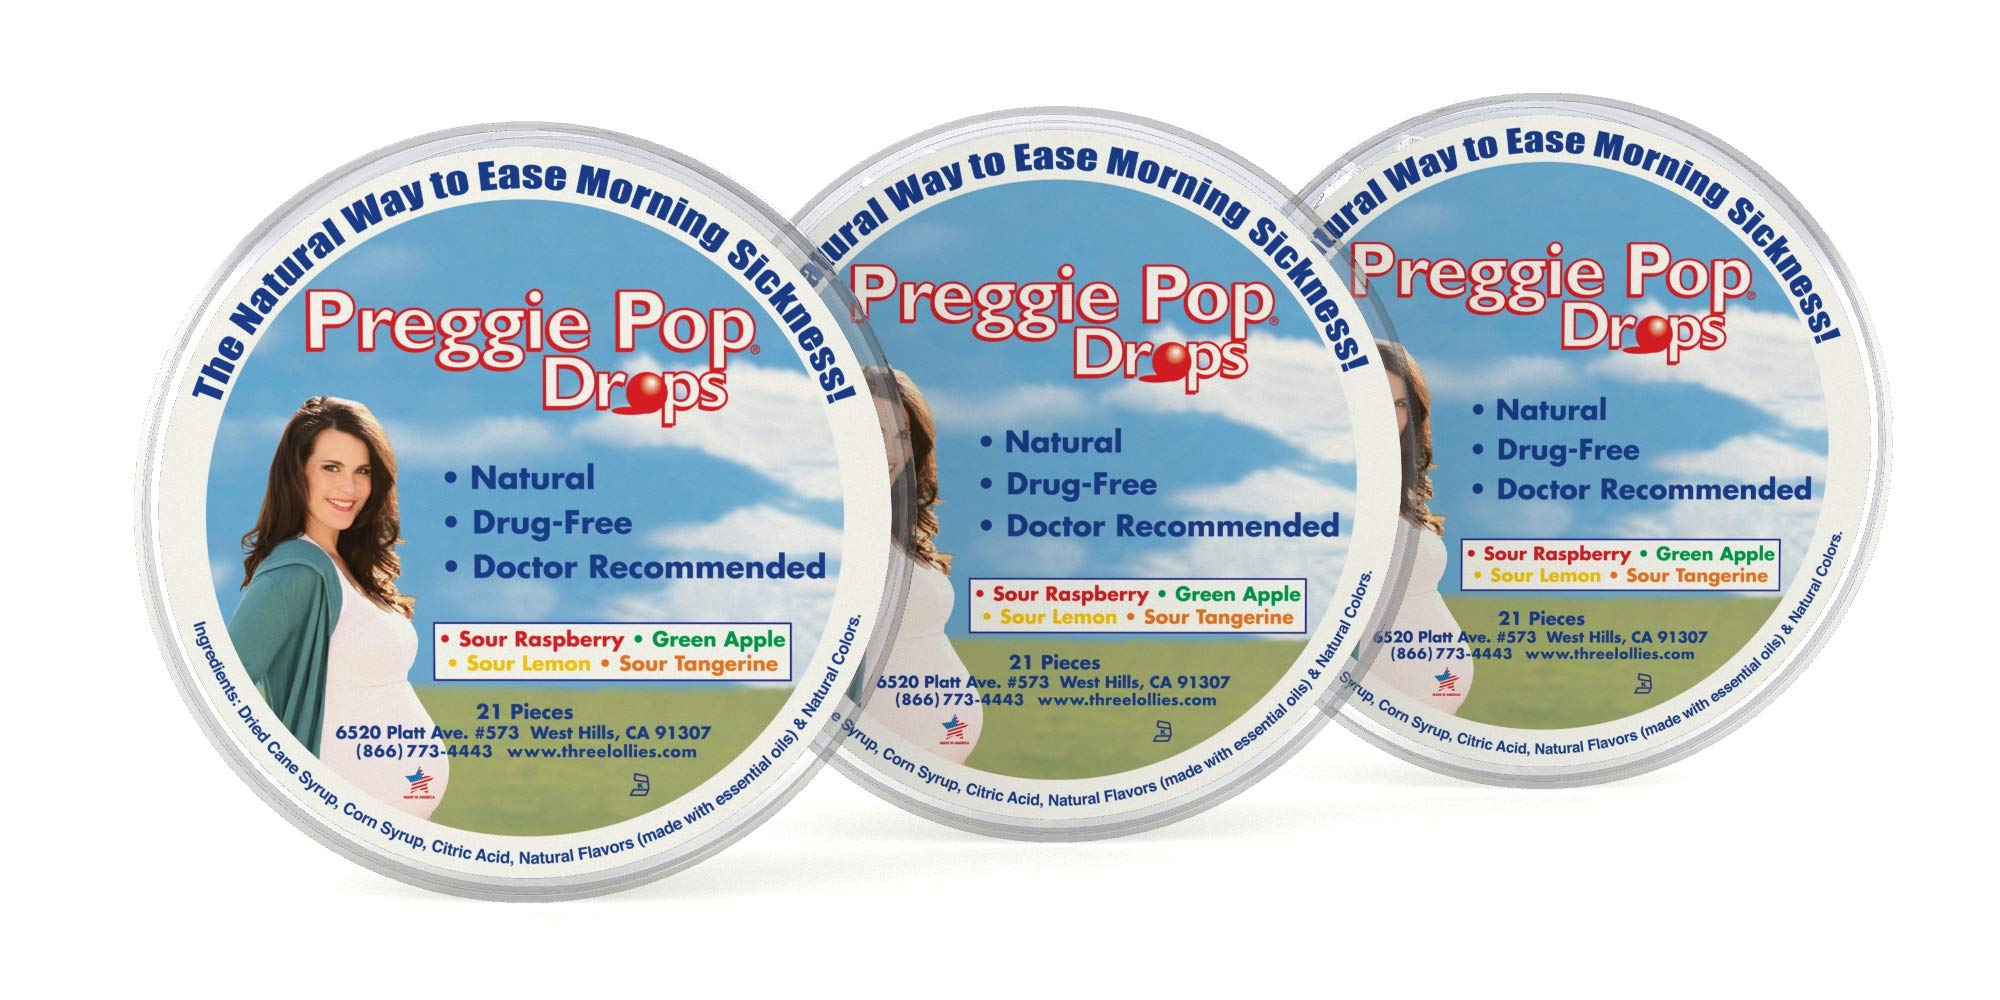 Preggie Pop Drops | Morning Sickness & Nausea Relief during pregnancy | Safe for pregnant Mom & Baby | Gluten Free | 4 Flavors: Lemon, Raspberry, Green Apple, Tangerine, 21 Count (Pack of 3)